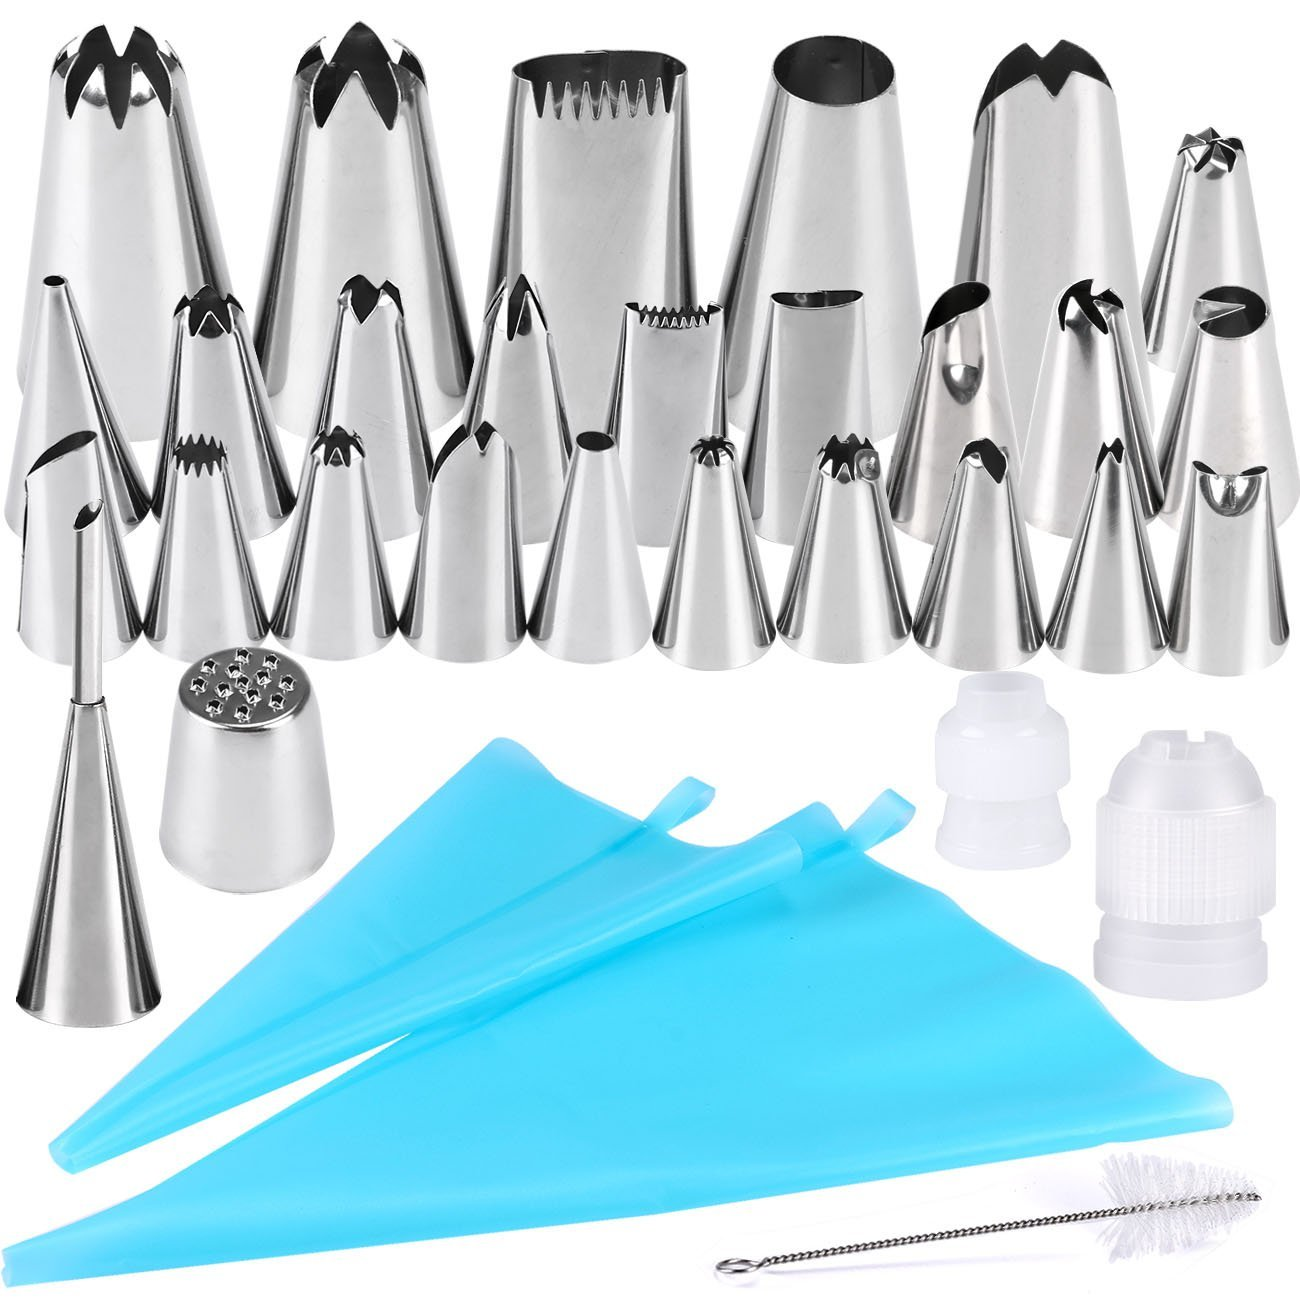 32 Pieces Cake Decorating Supplies, Seacue Cake Decorating Tip Set with 20 Stainless Icing Tips, 5 Large Piping Nozzles, 1 Grass Nozzle, 1 Puffs Tip, 2 Couplers, 1 Brush, 2 Silicone Pastry Bags KC034-